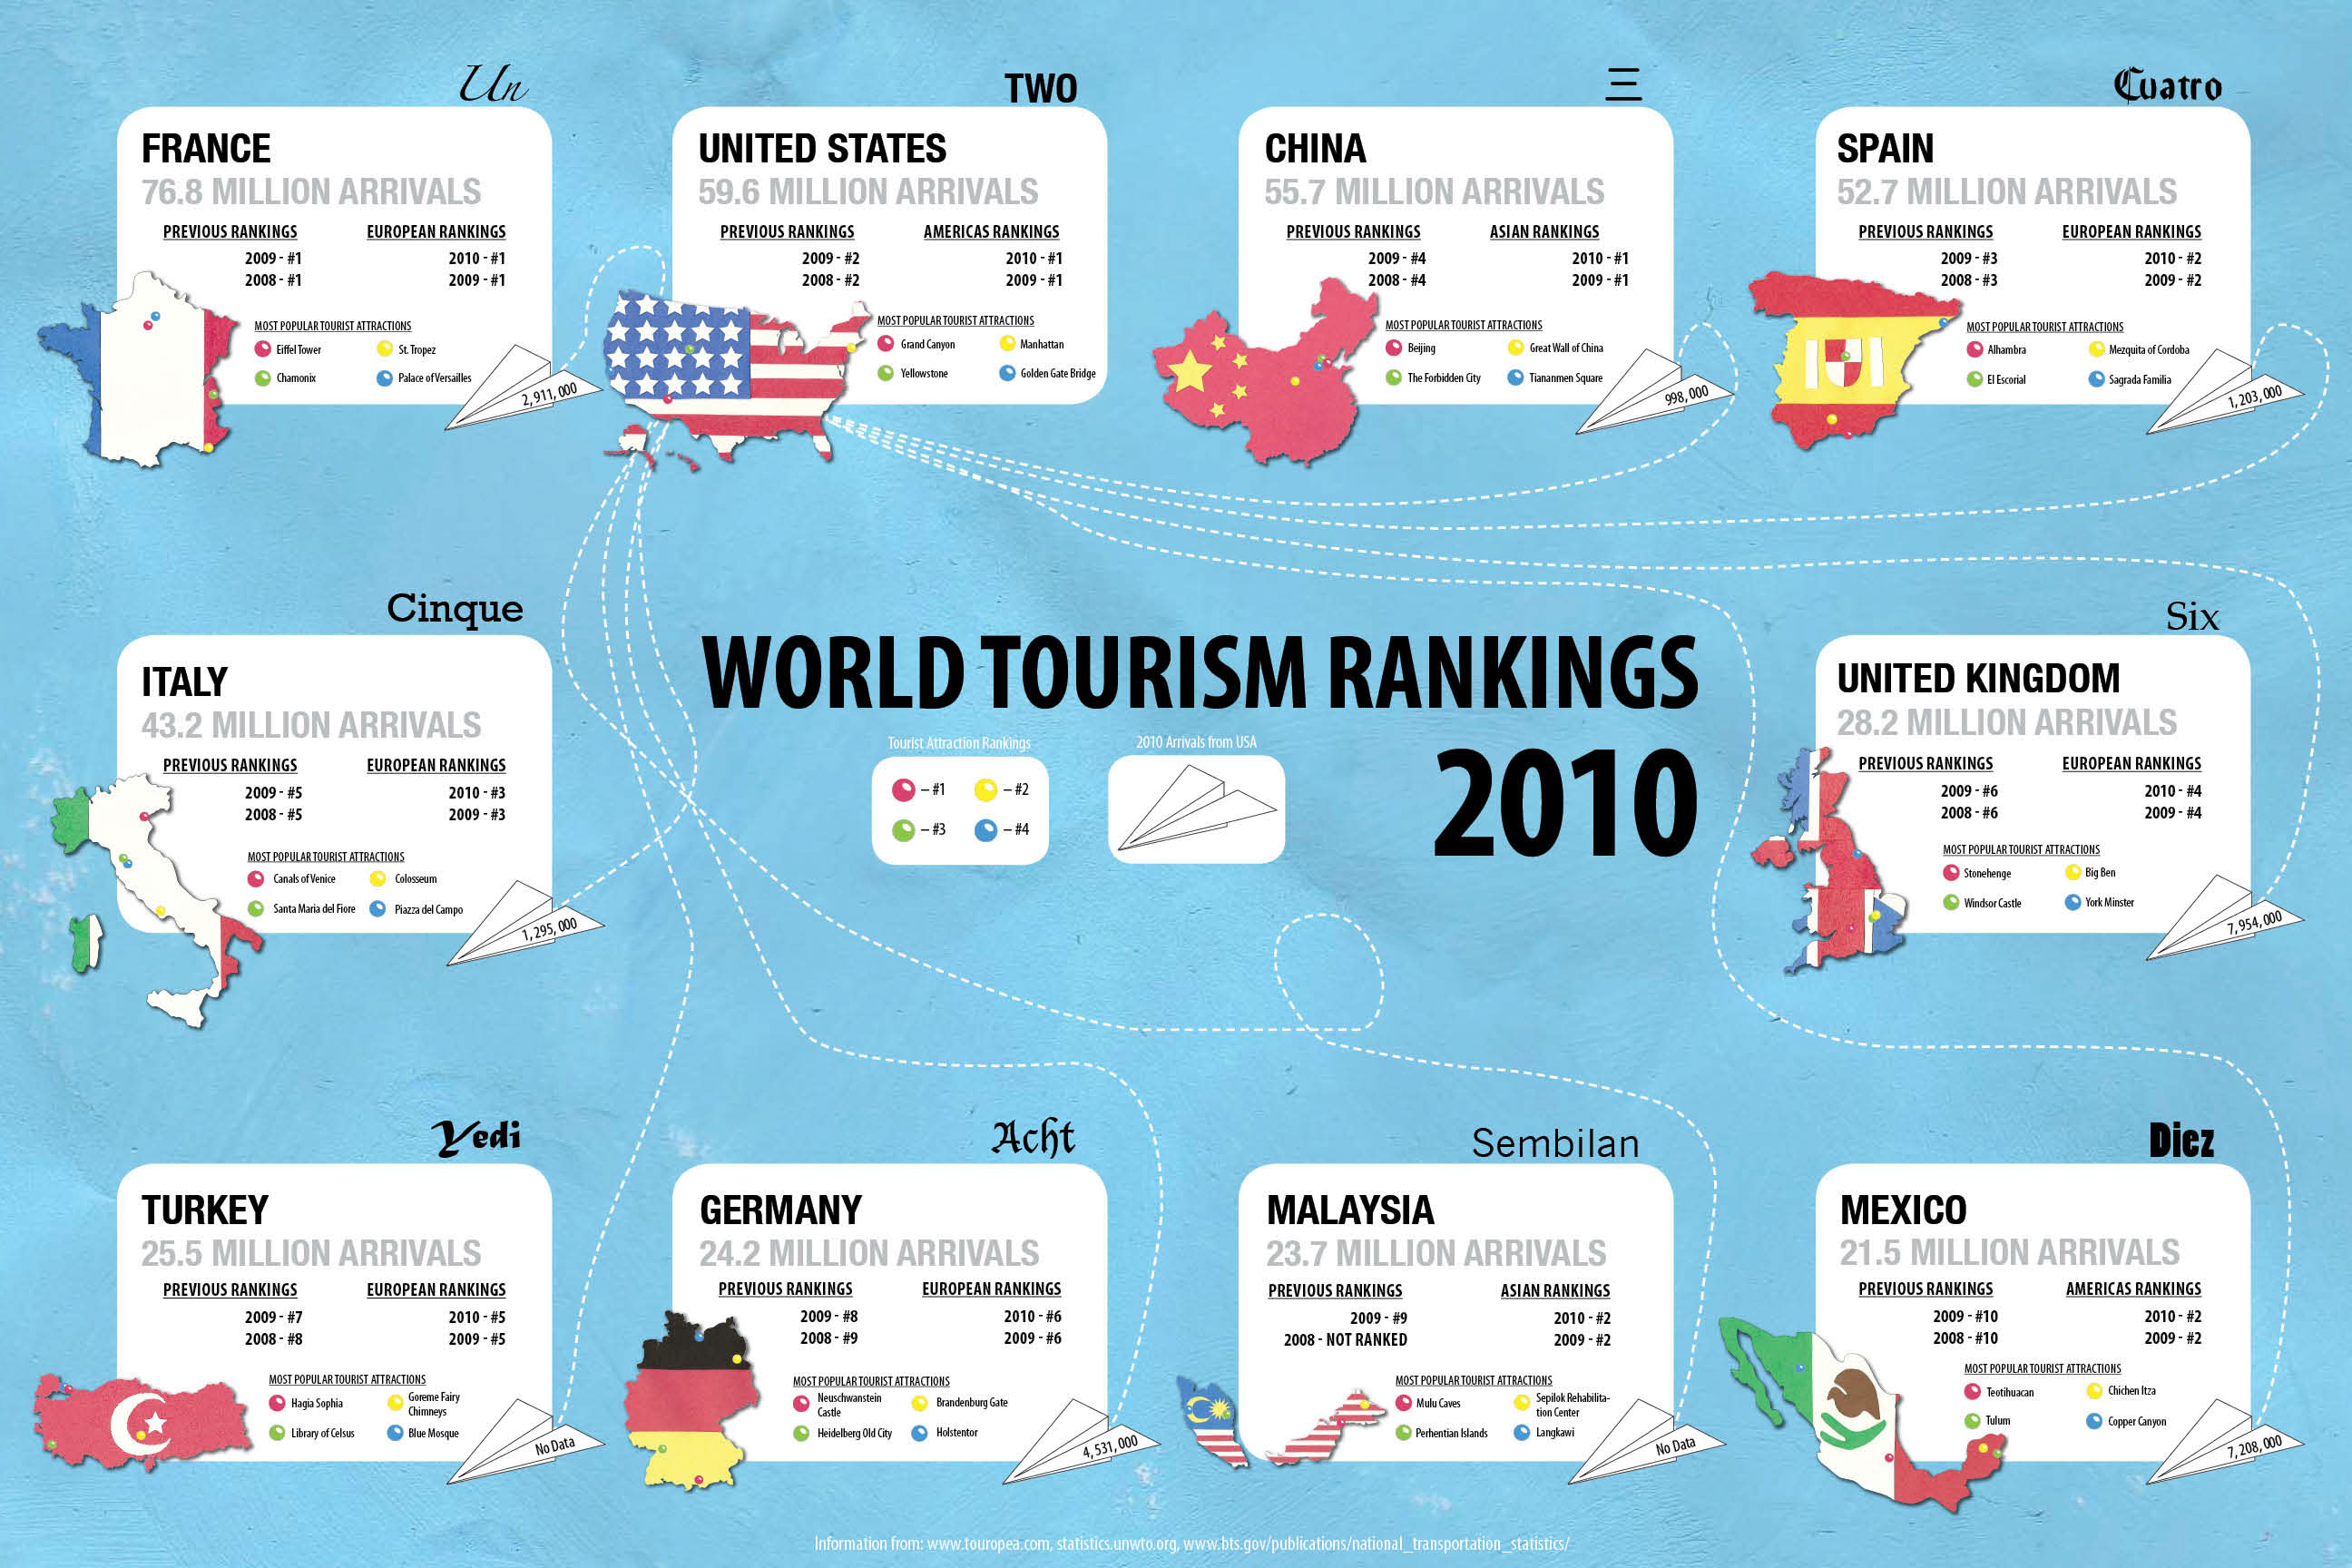 top 10 tourist destination countries in the world 2012